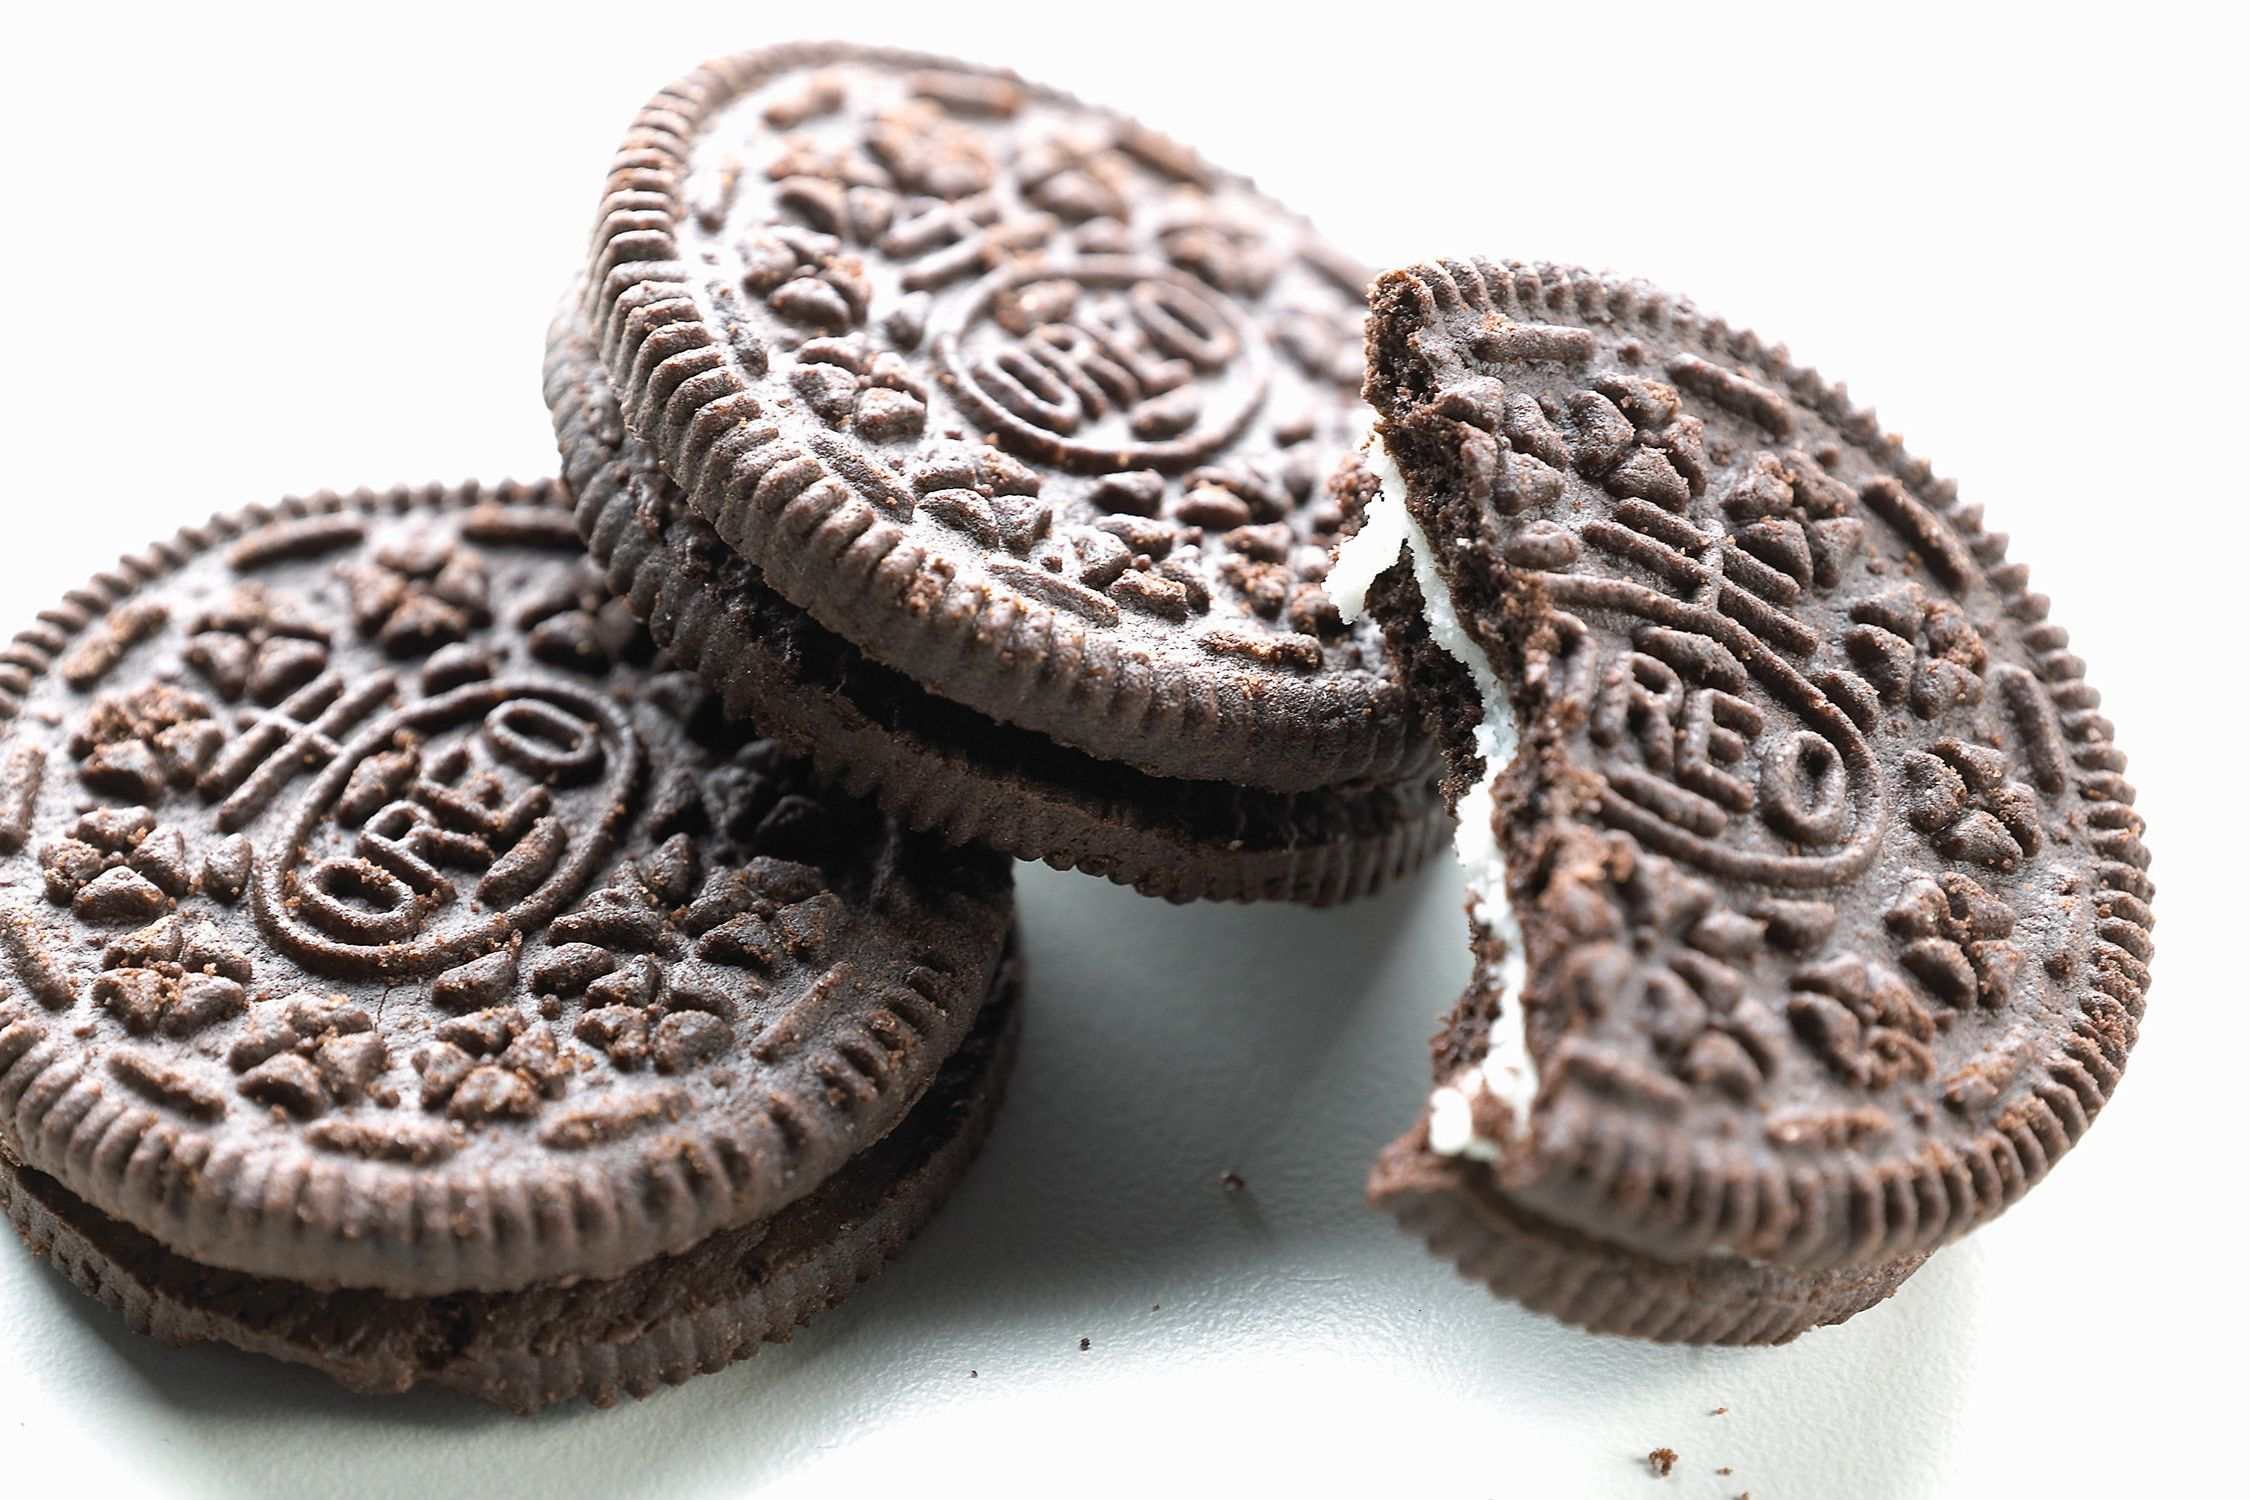 An 'Oreo Cookie Club Subscription' Is Available on Amazon